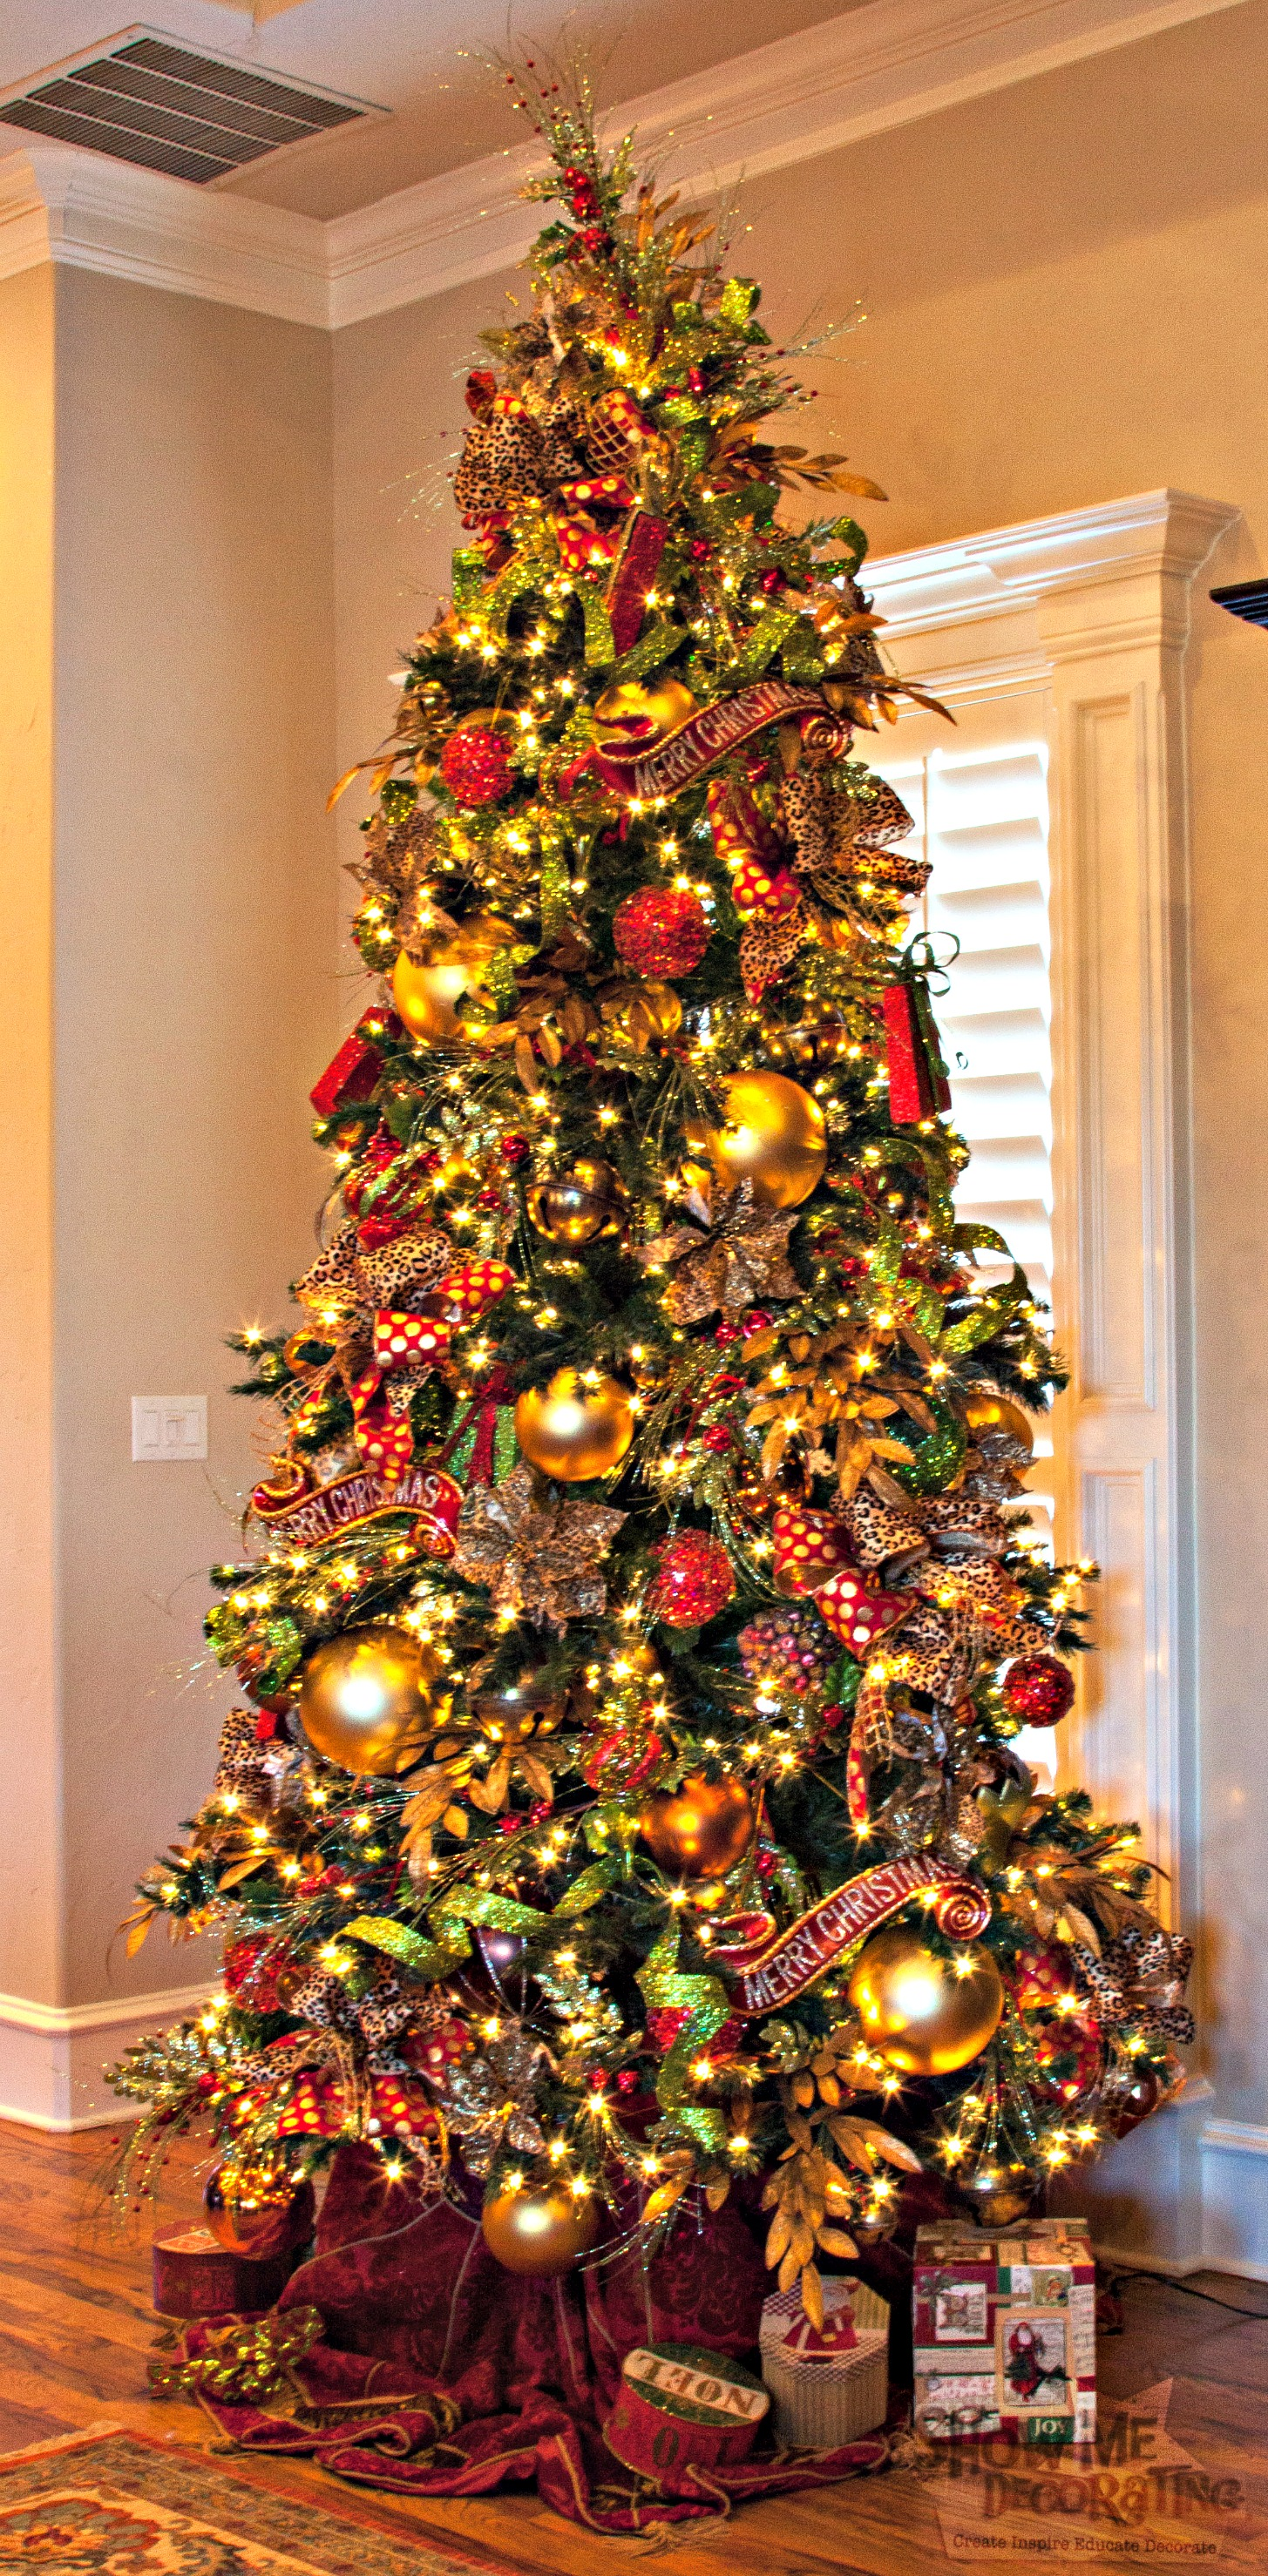 decorated christmas trees - photo #30